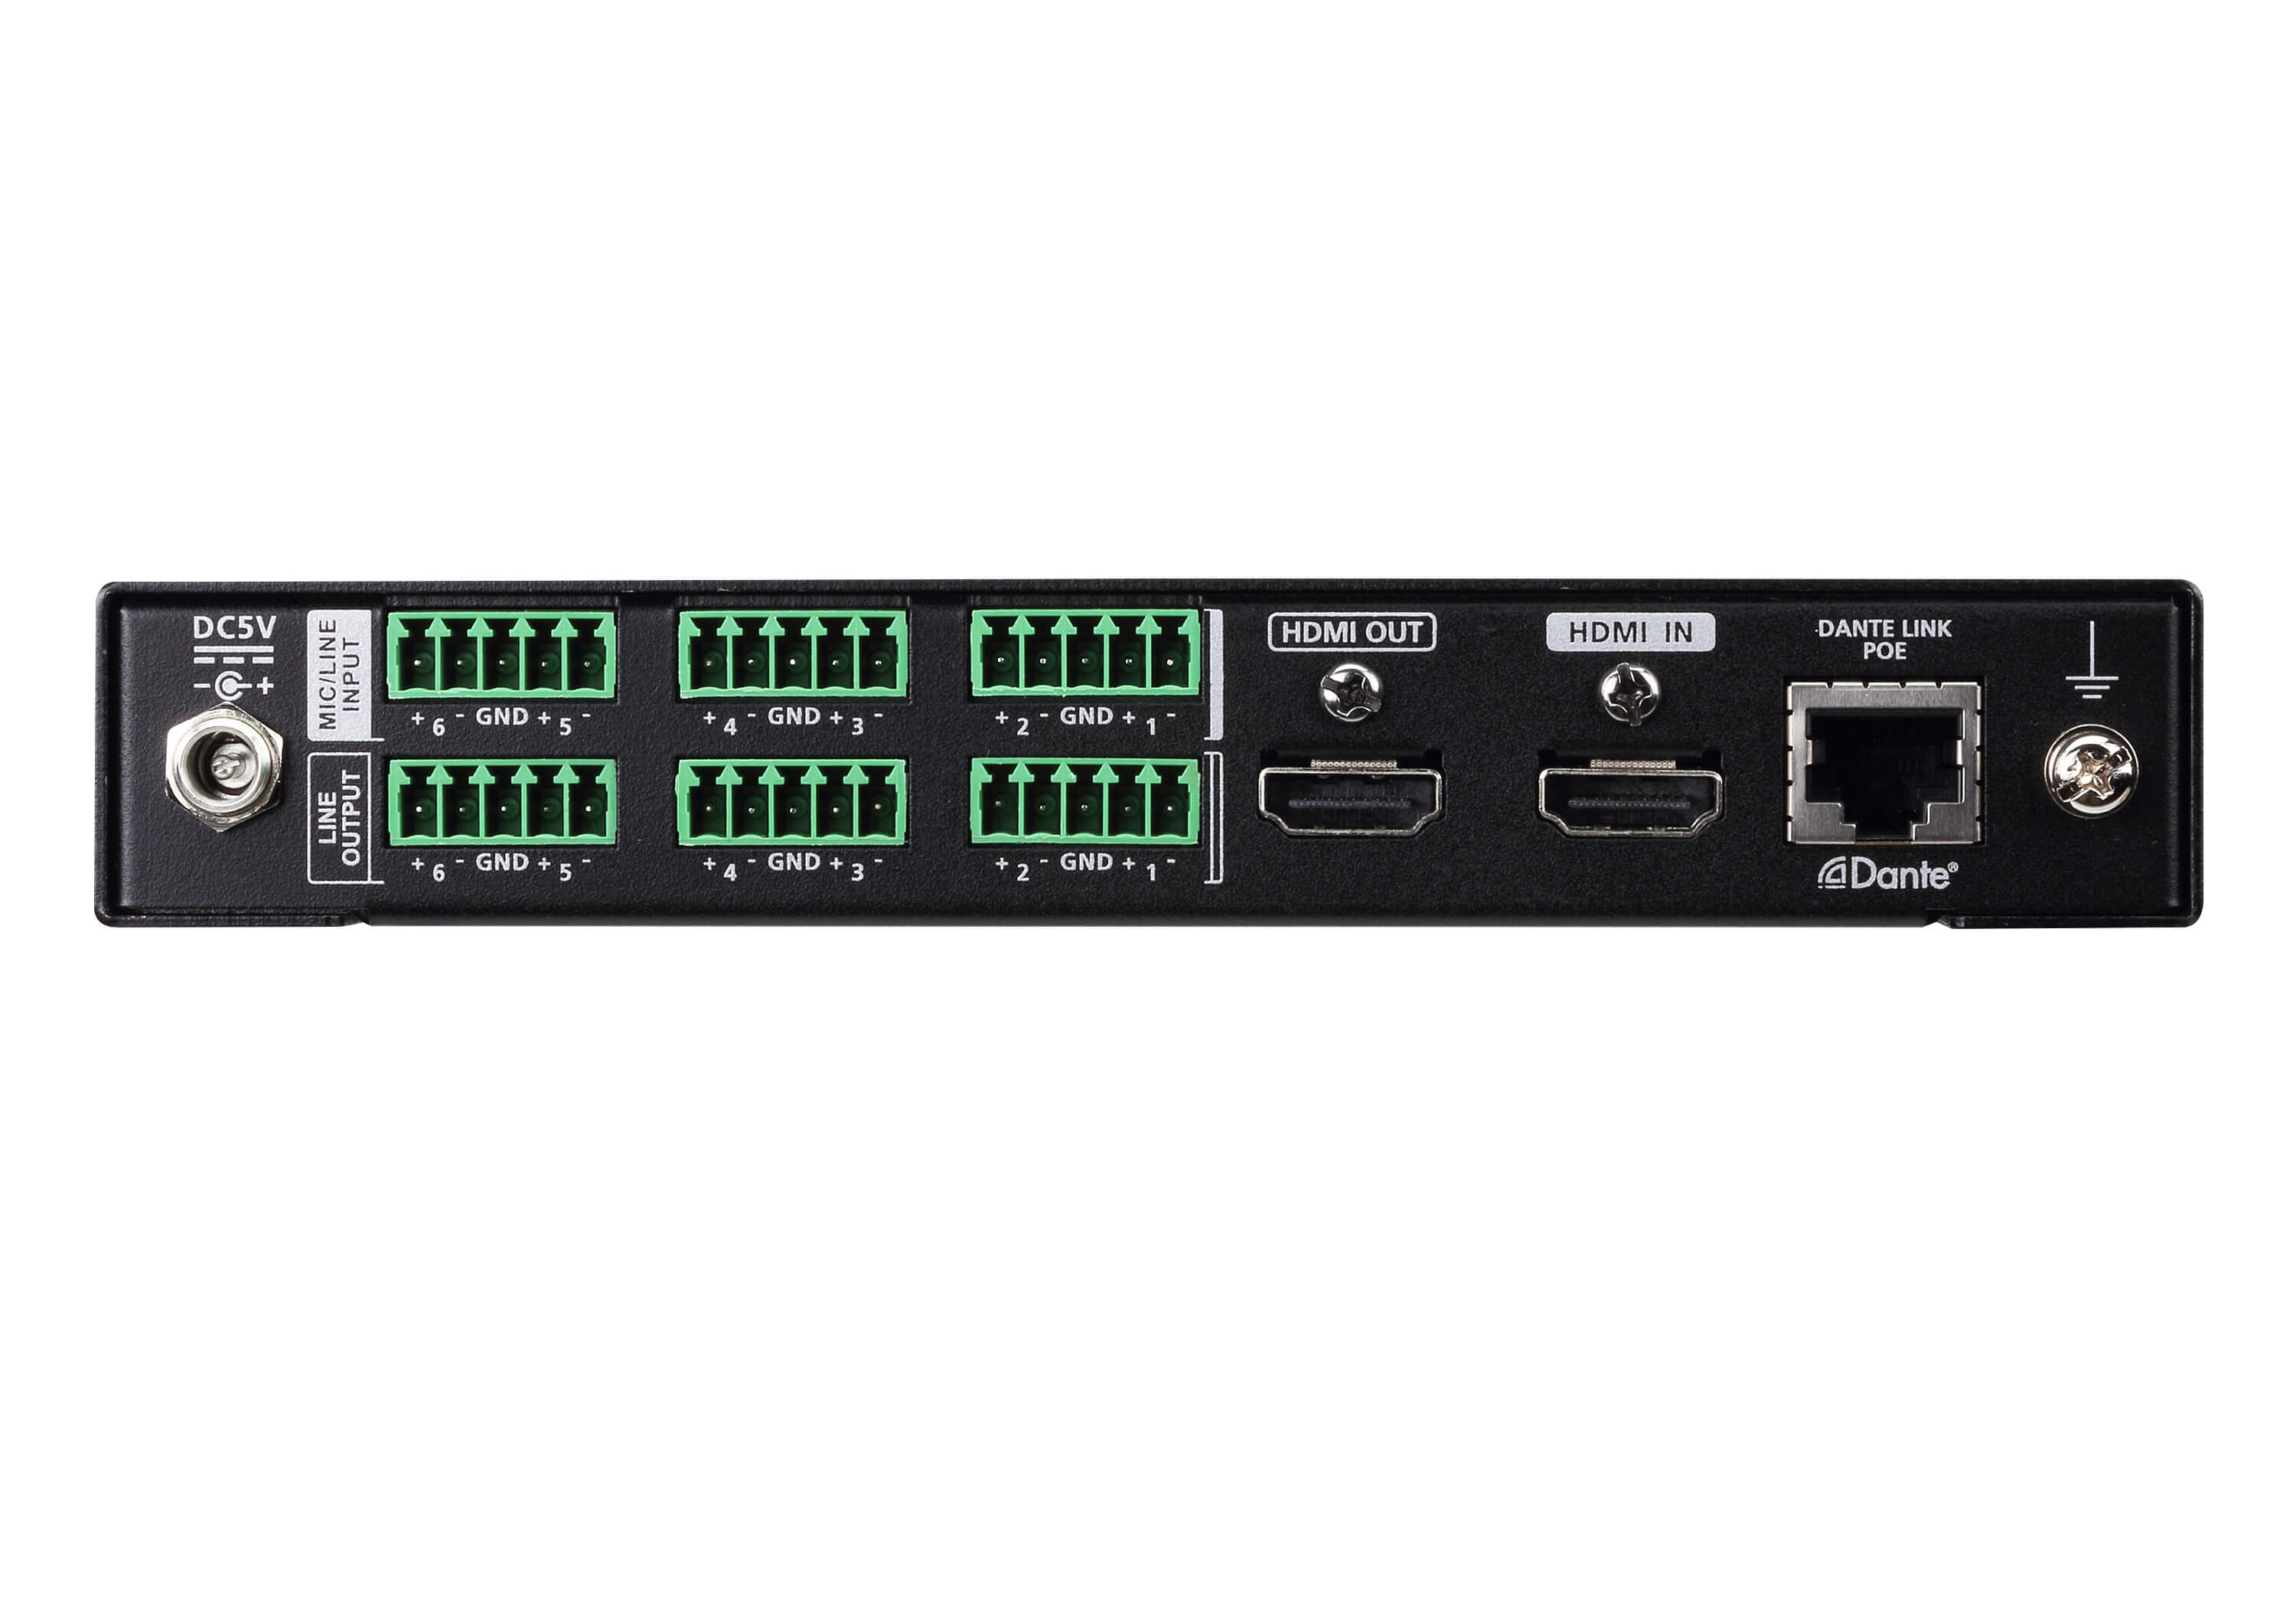 6 x 6 Dante Interface Áudio com HDMI-2